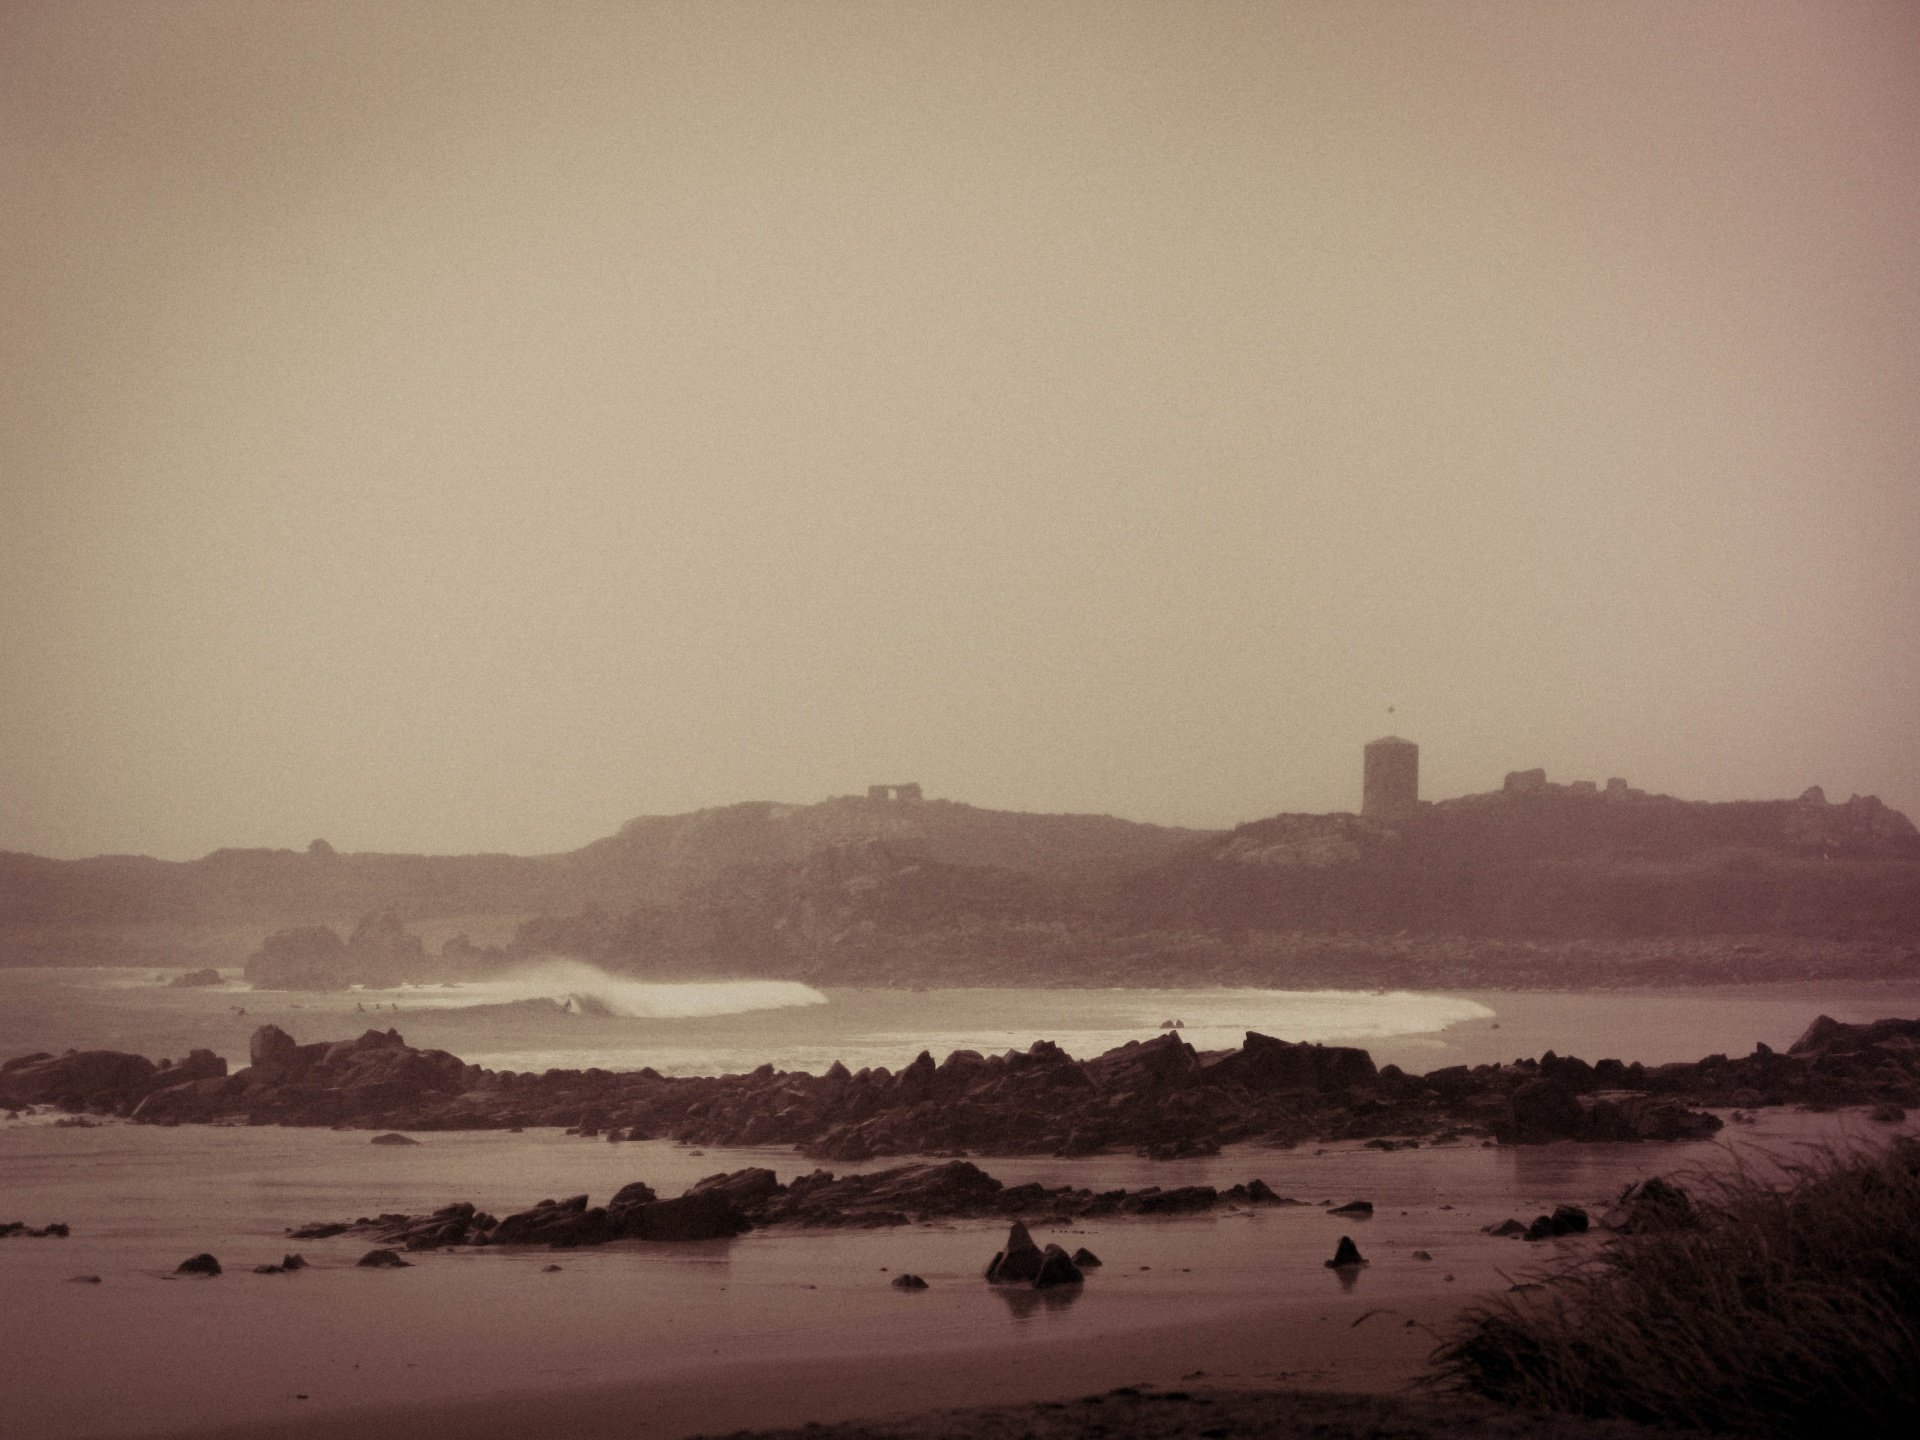 James Colmer's photo of L'Ancresse Bay - Guernsey